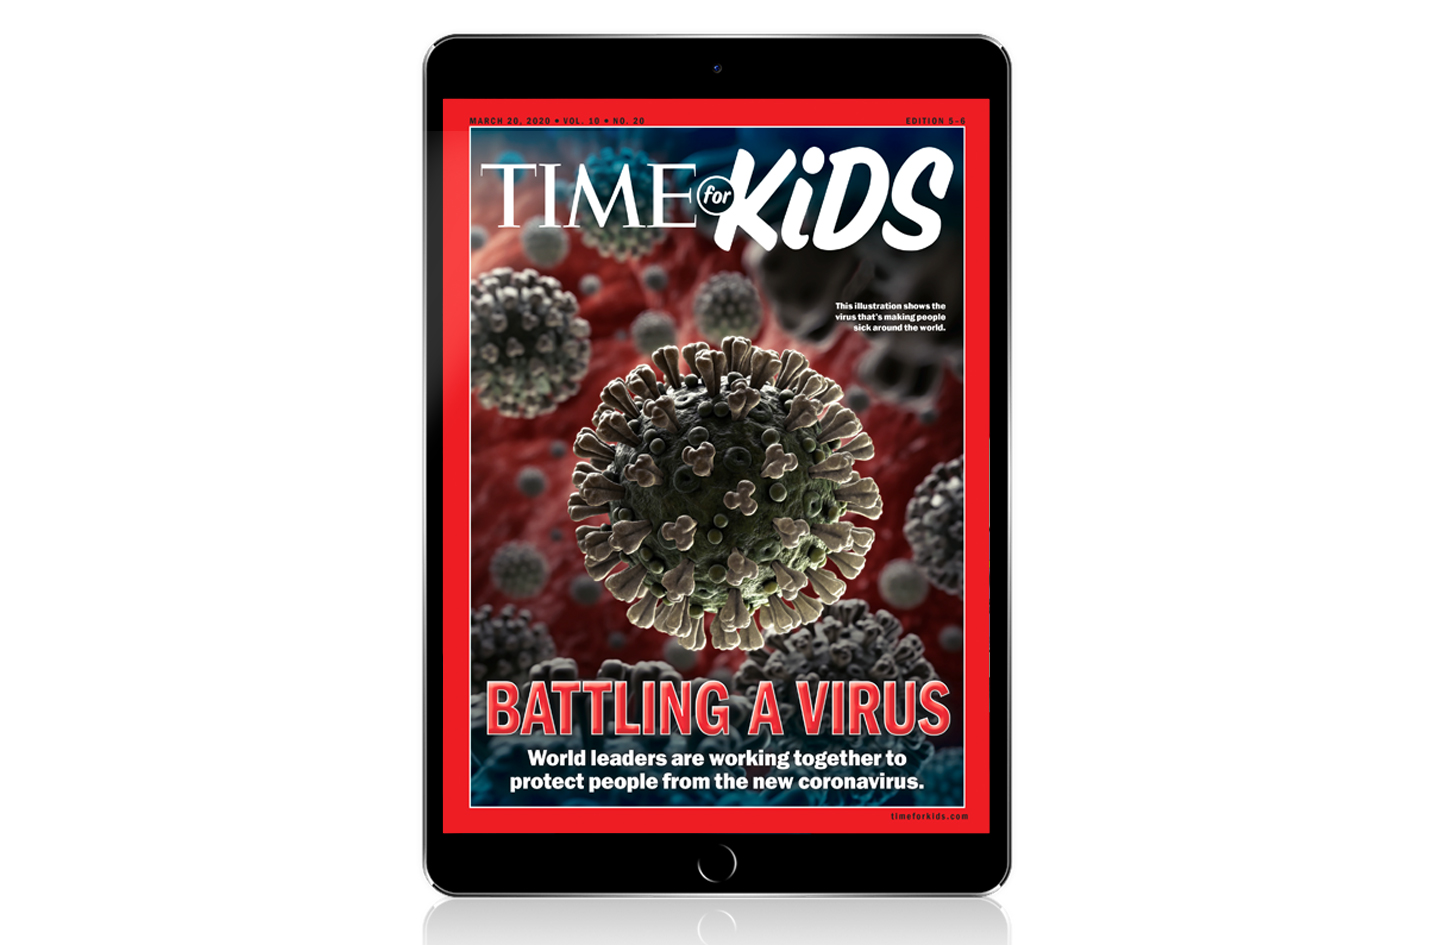 TIME for Kids Launches Free Digital Library